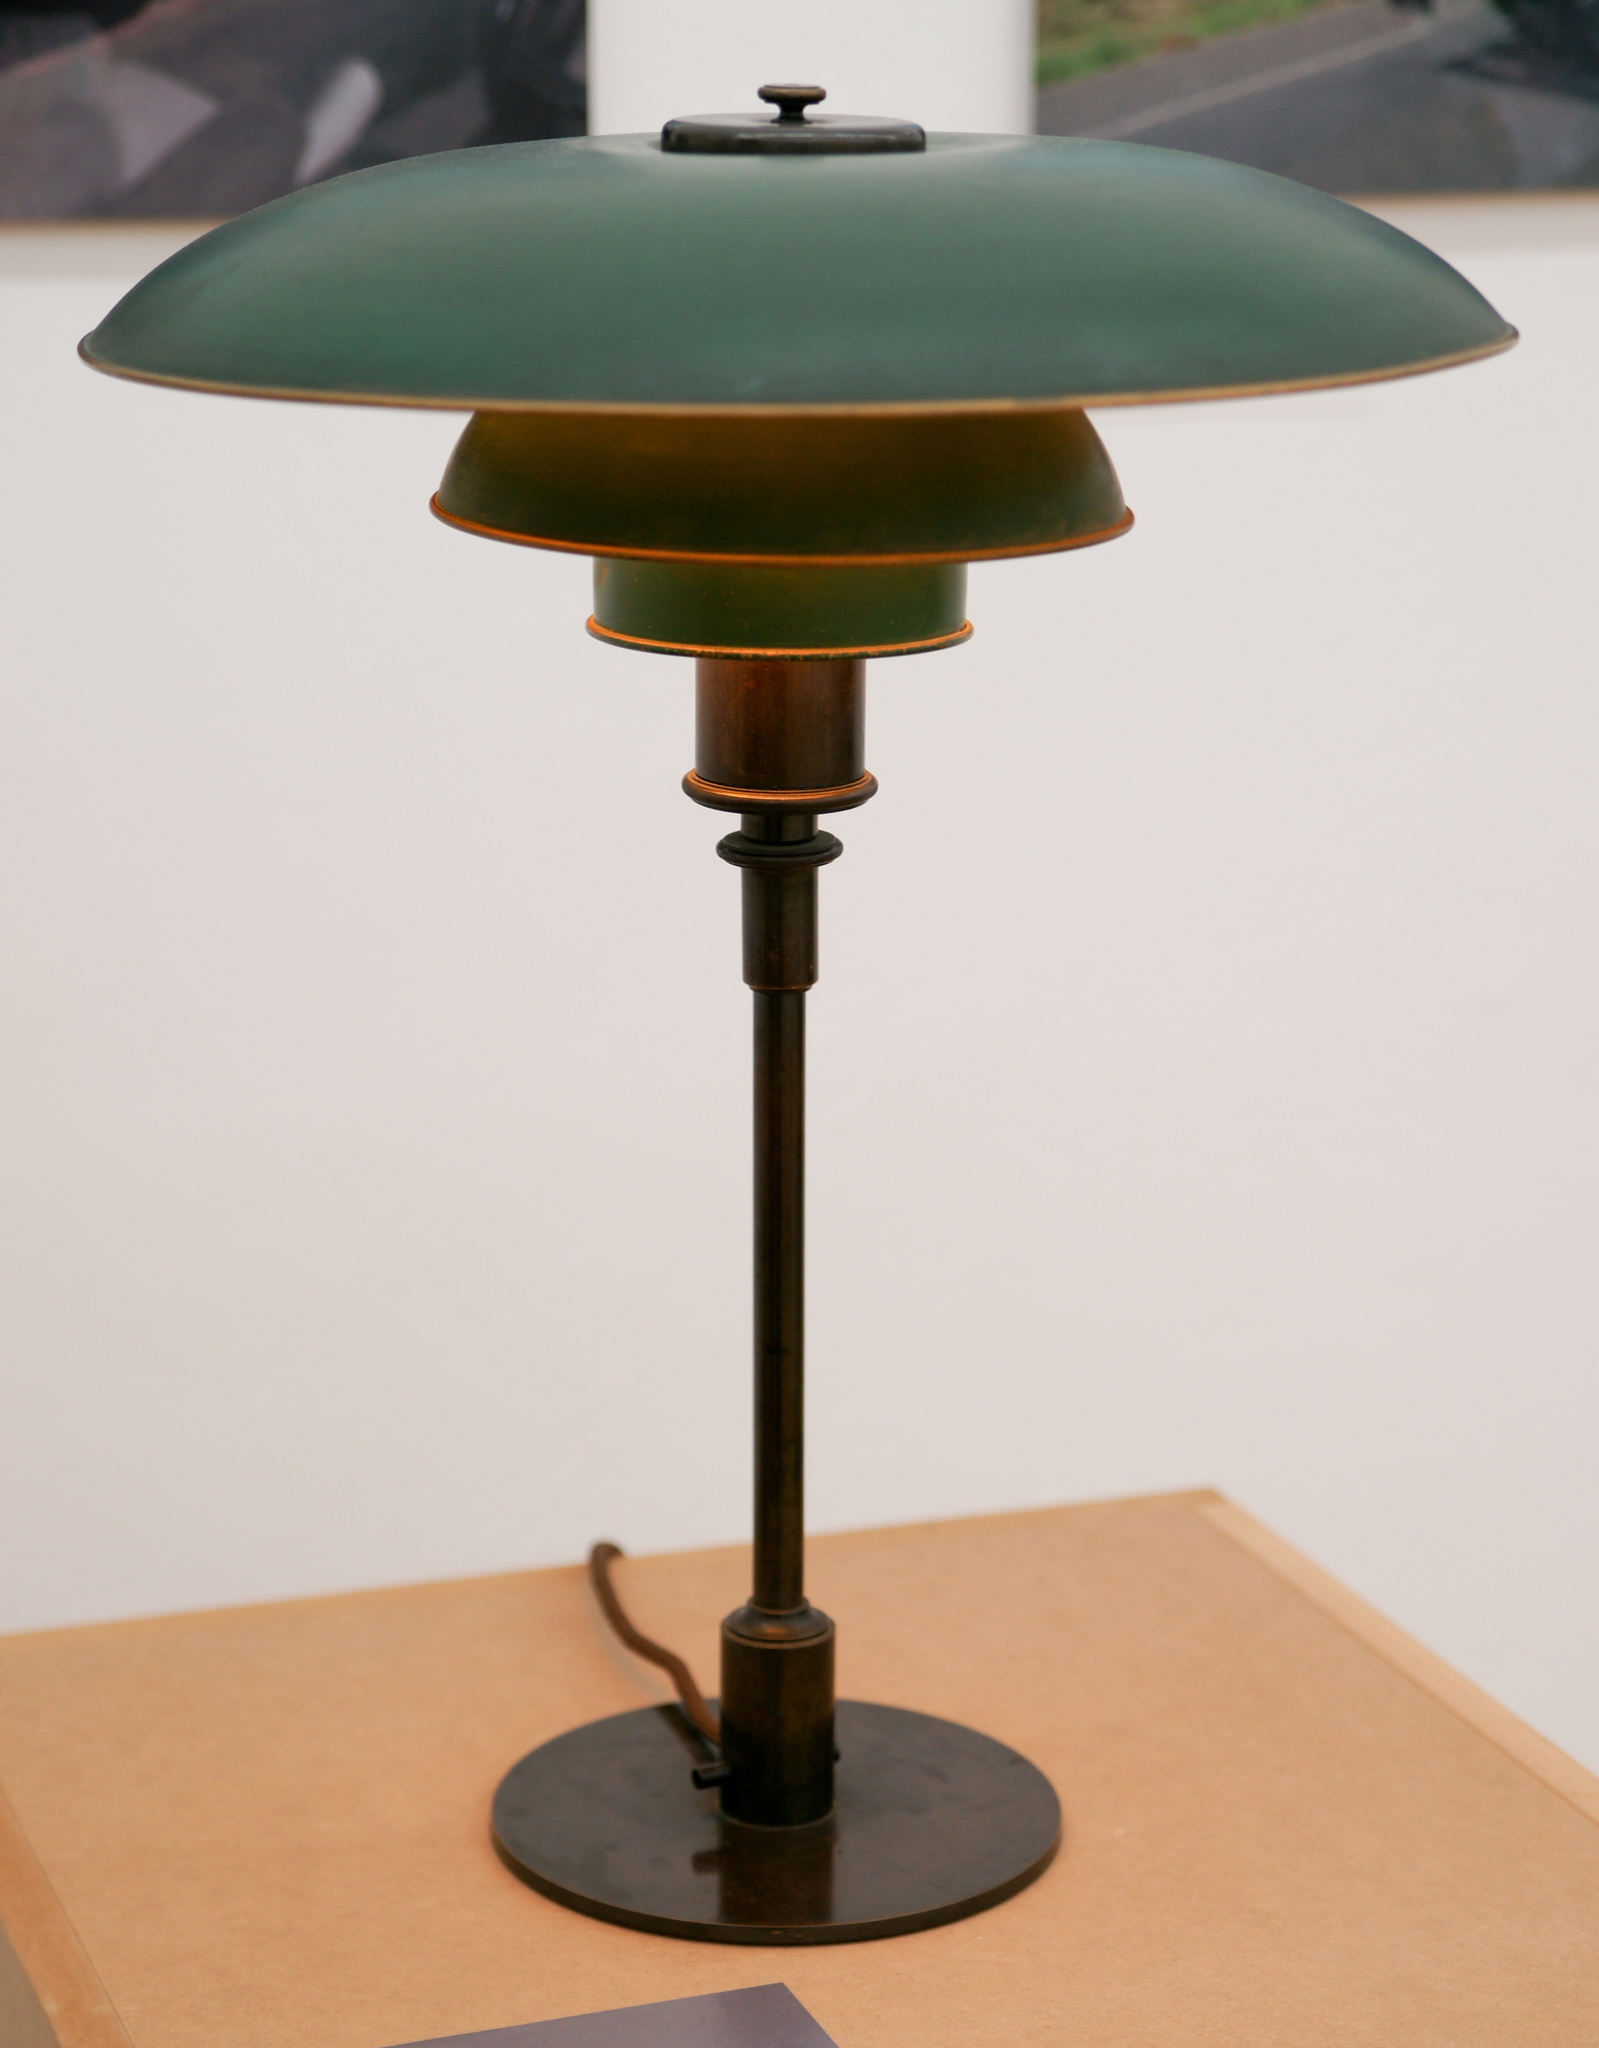 replica Louis Poulsen table lamp by Poul Henningsen